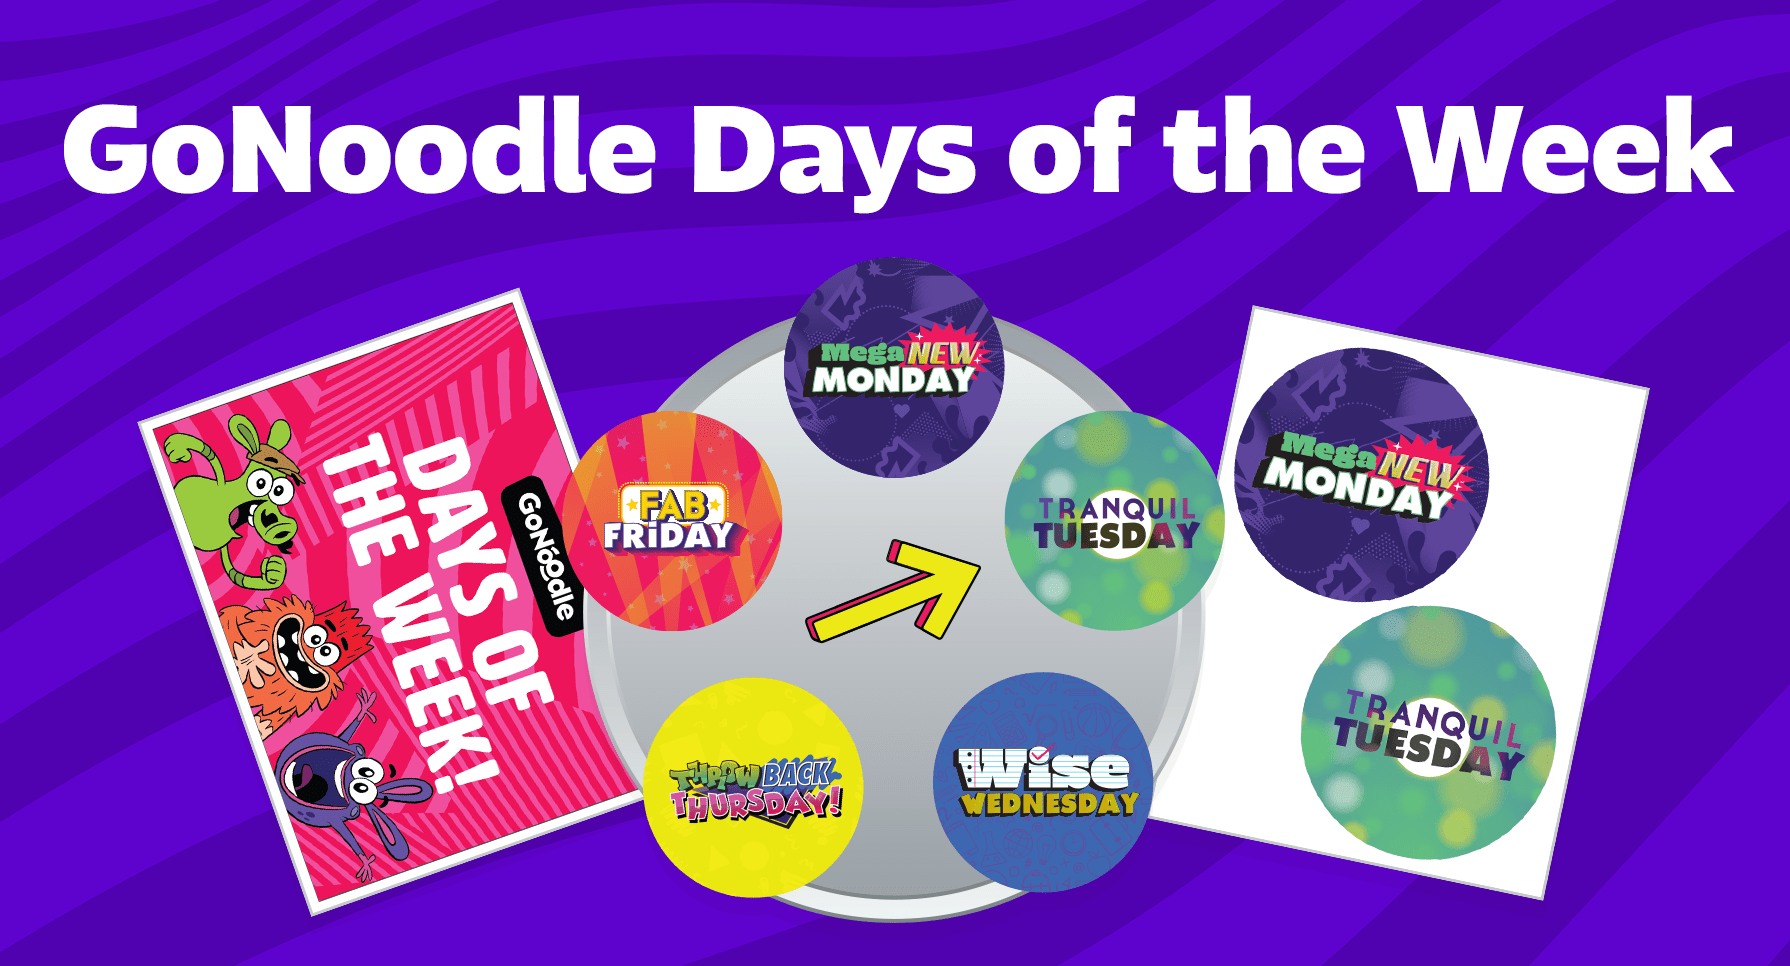 download gonoodle days of